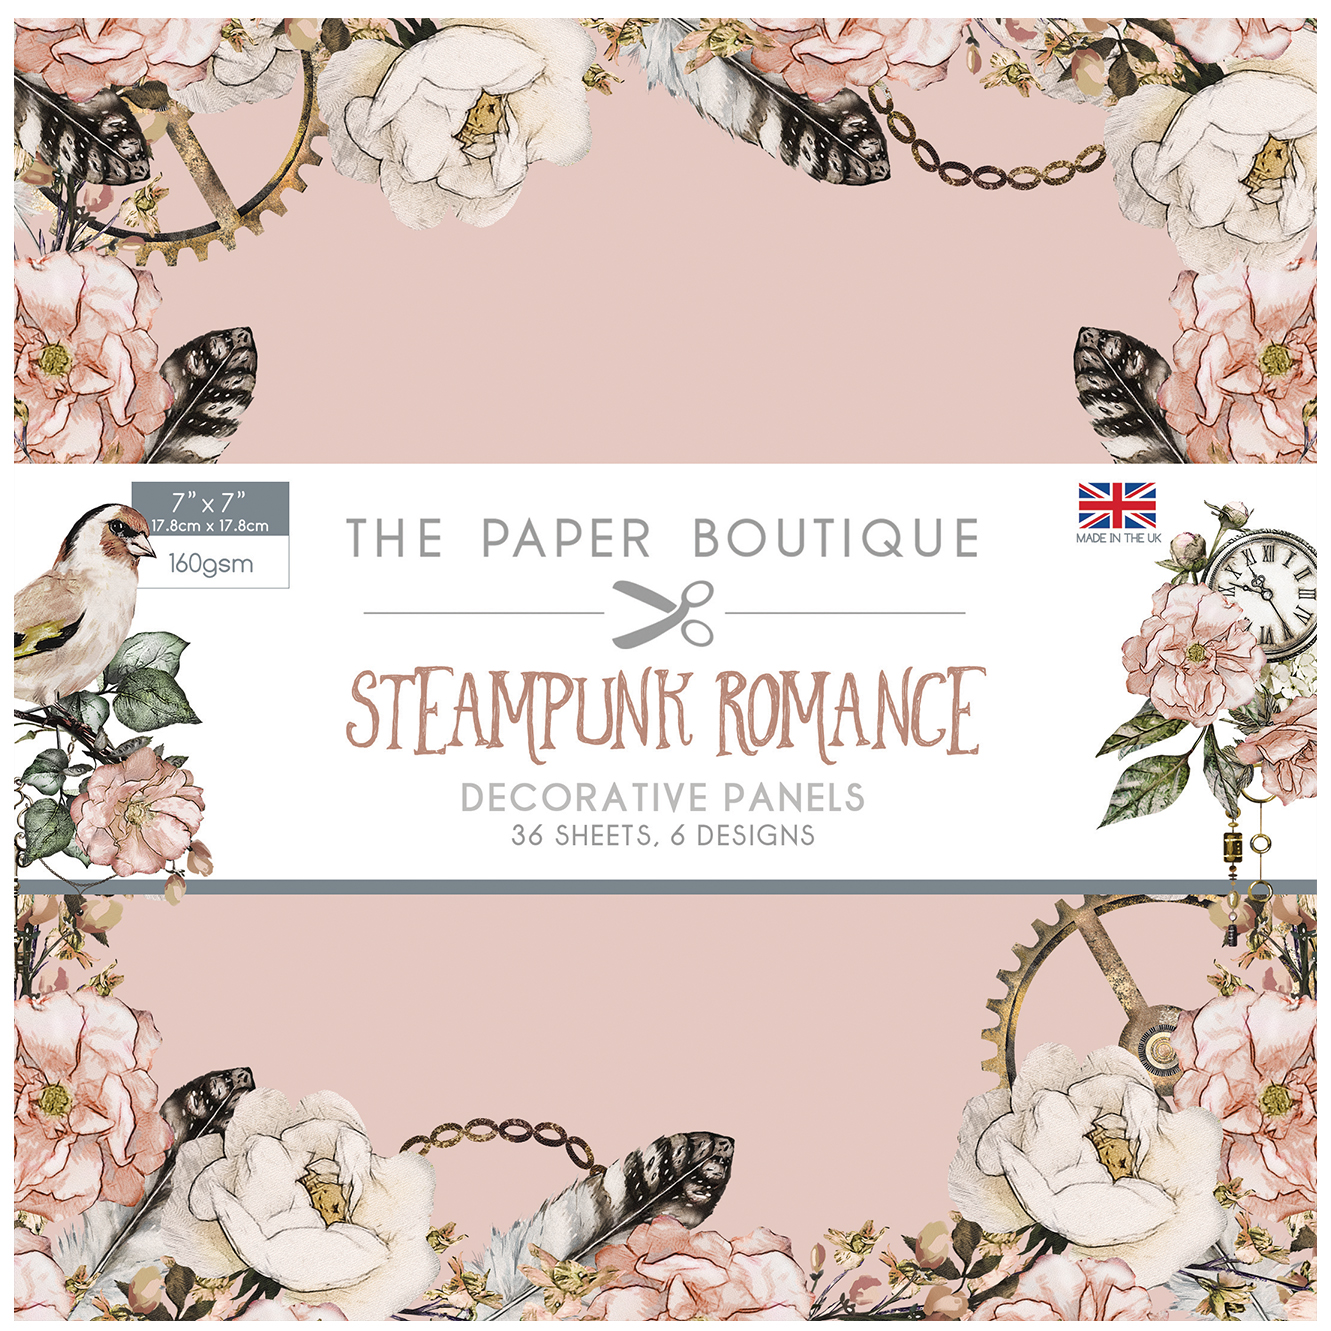 The Paper Boutique Steampunk Romance 7″ x 7″ Panel Pad